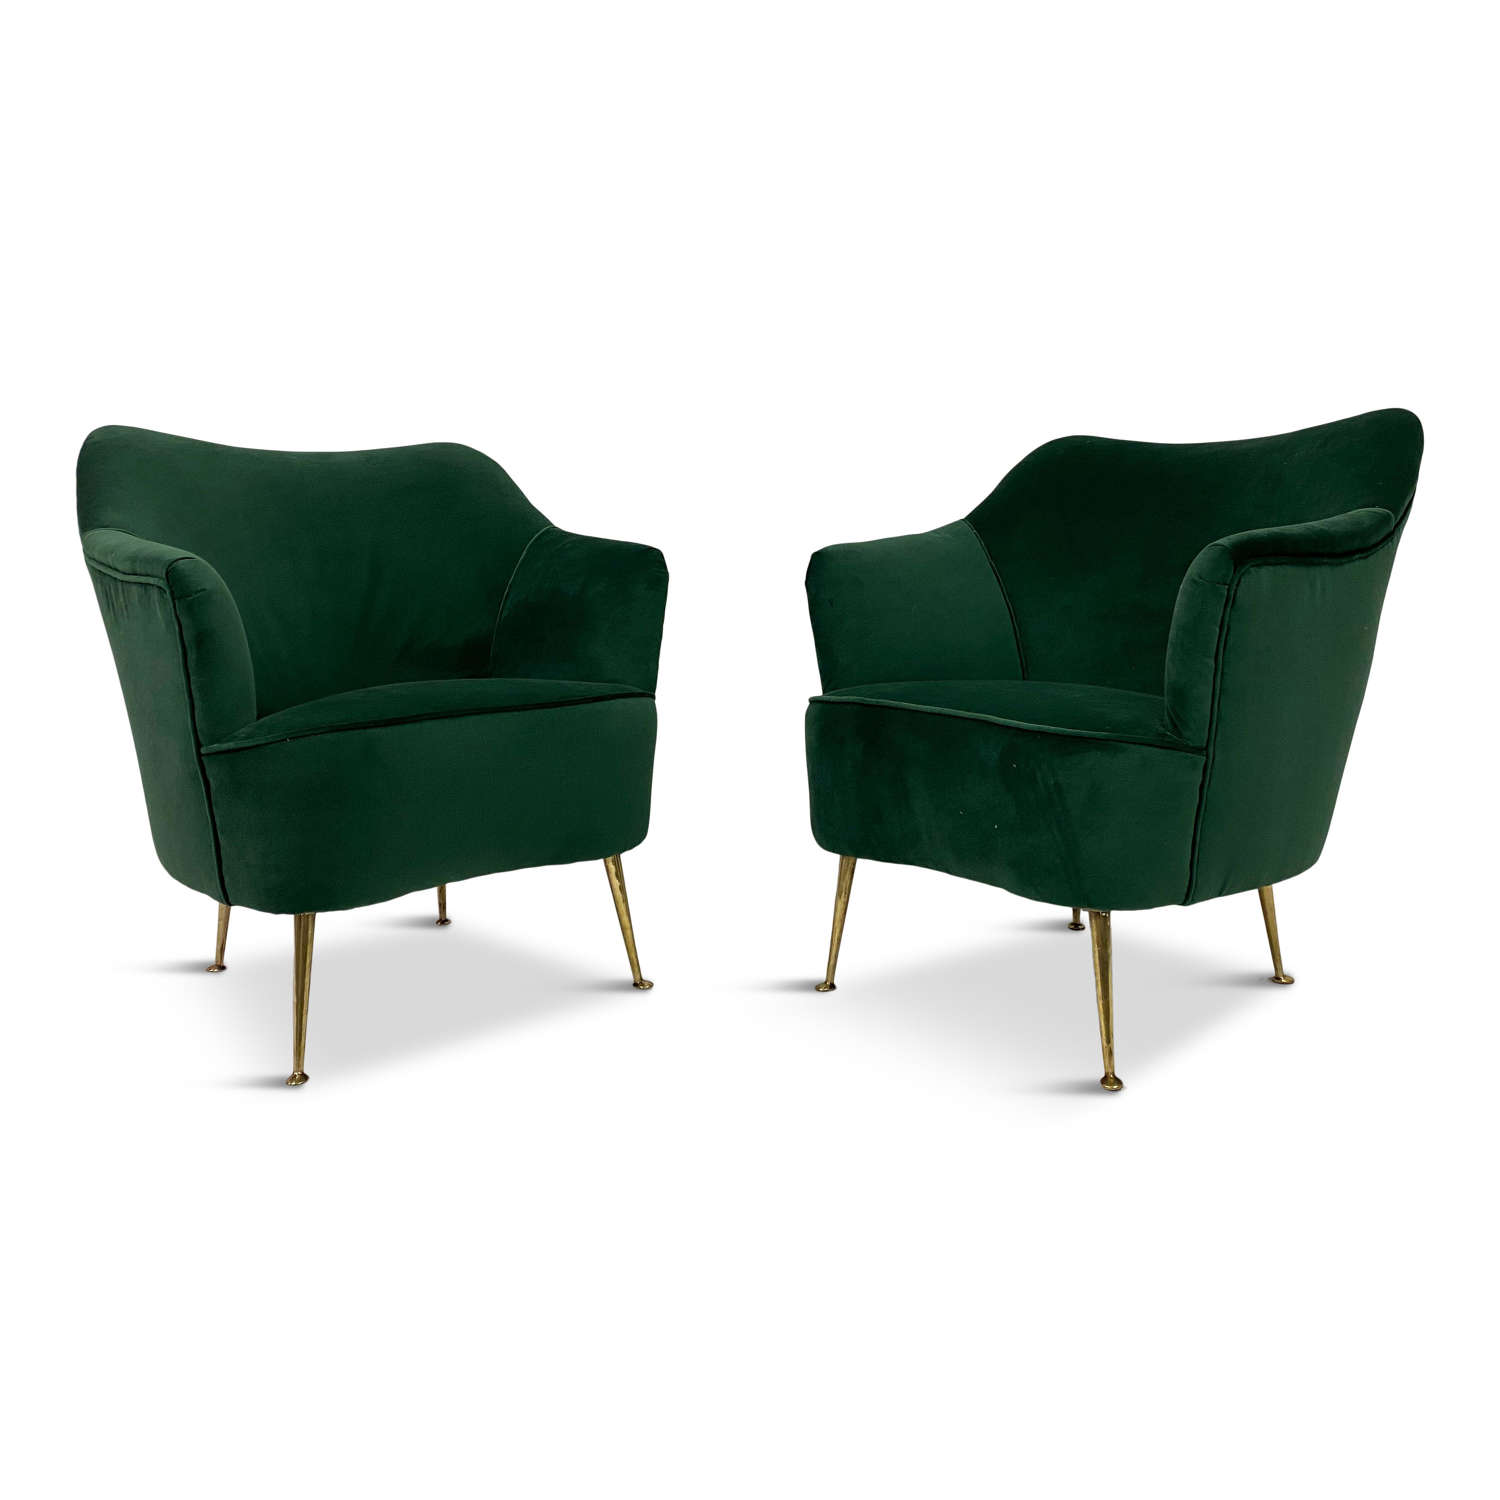 Pair of 1950s Italian Armchairs in Green Velvet